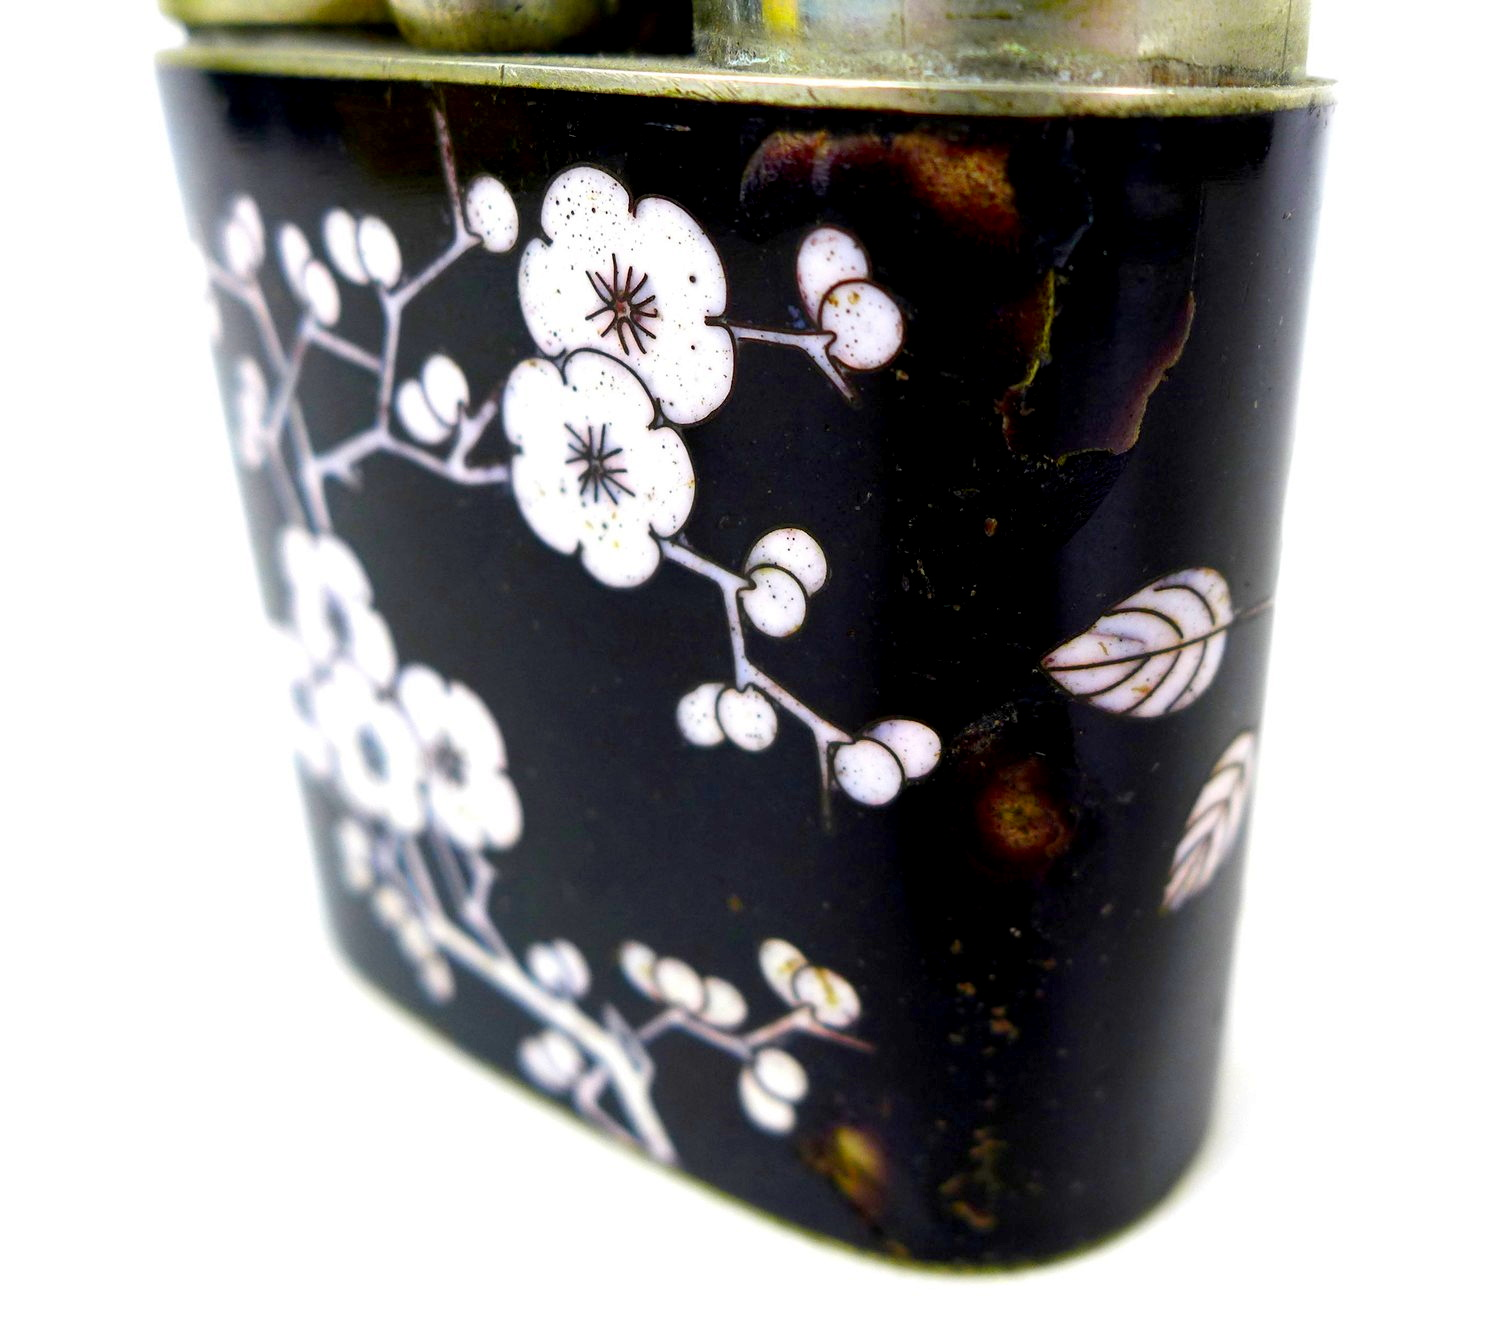 A group of three Chinese opium pipes, the largest with white blossom on black enamels decoration, - Image 4 of 6